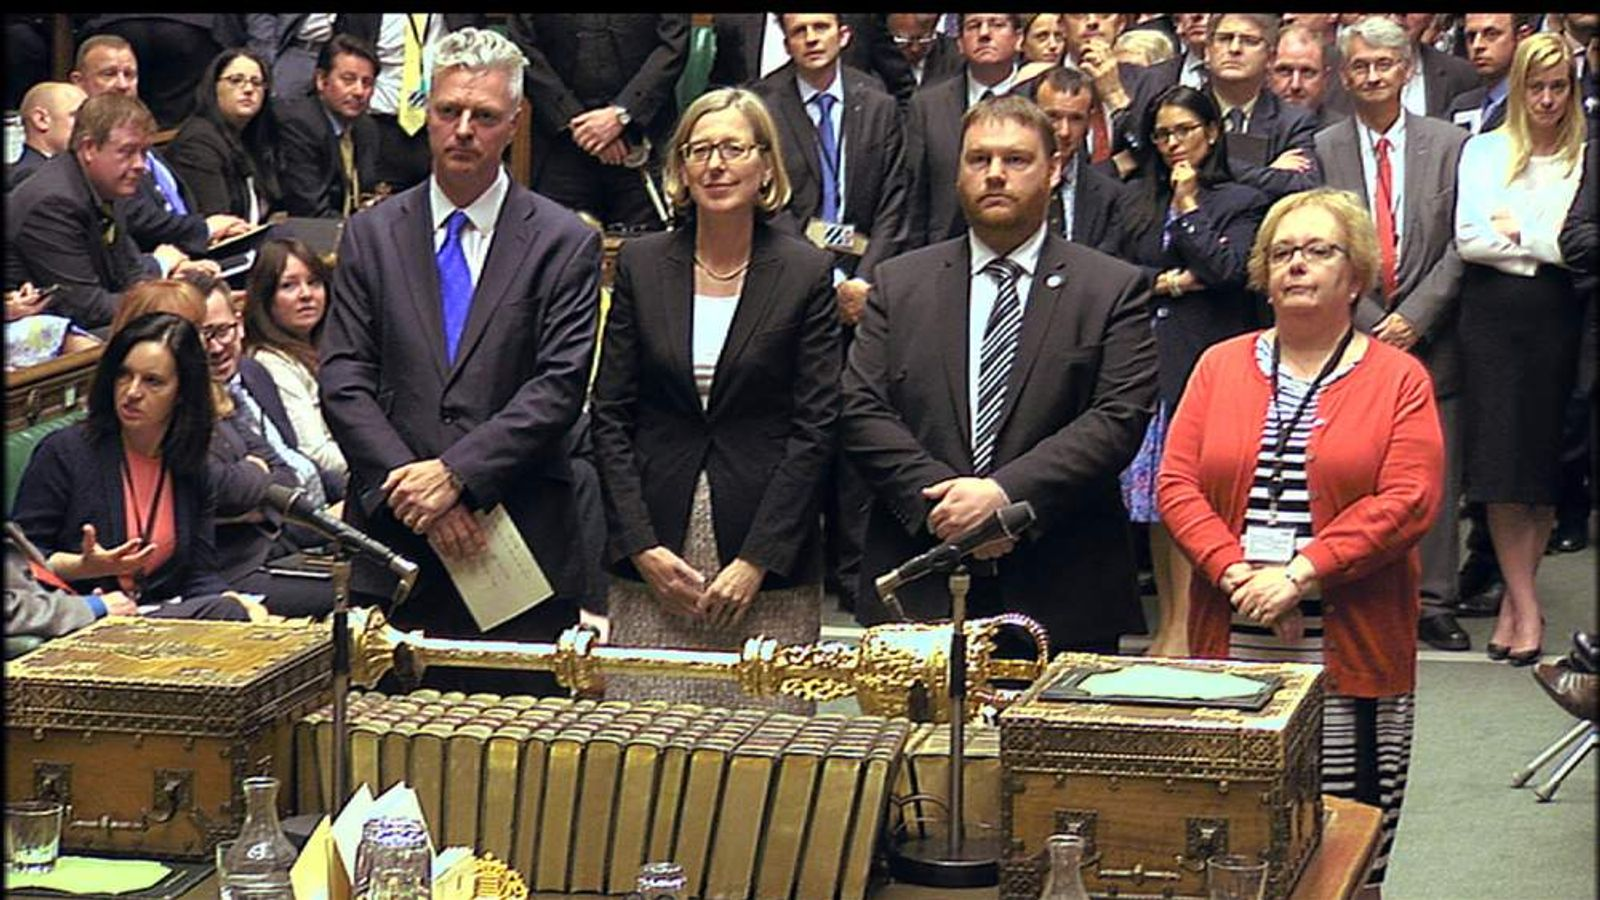 The vote results being announced in the House of Commons